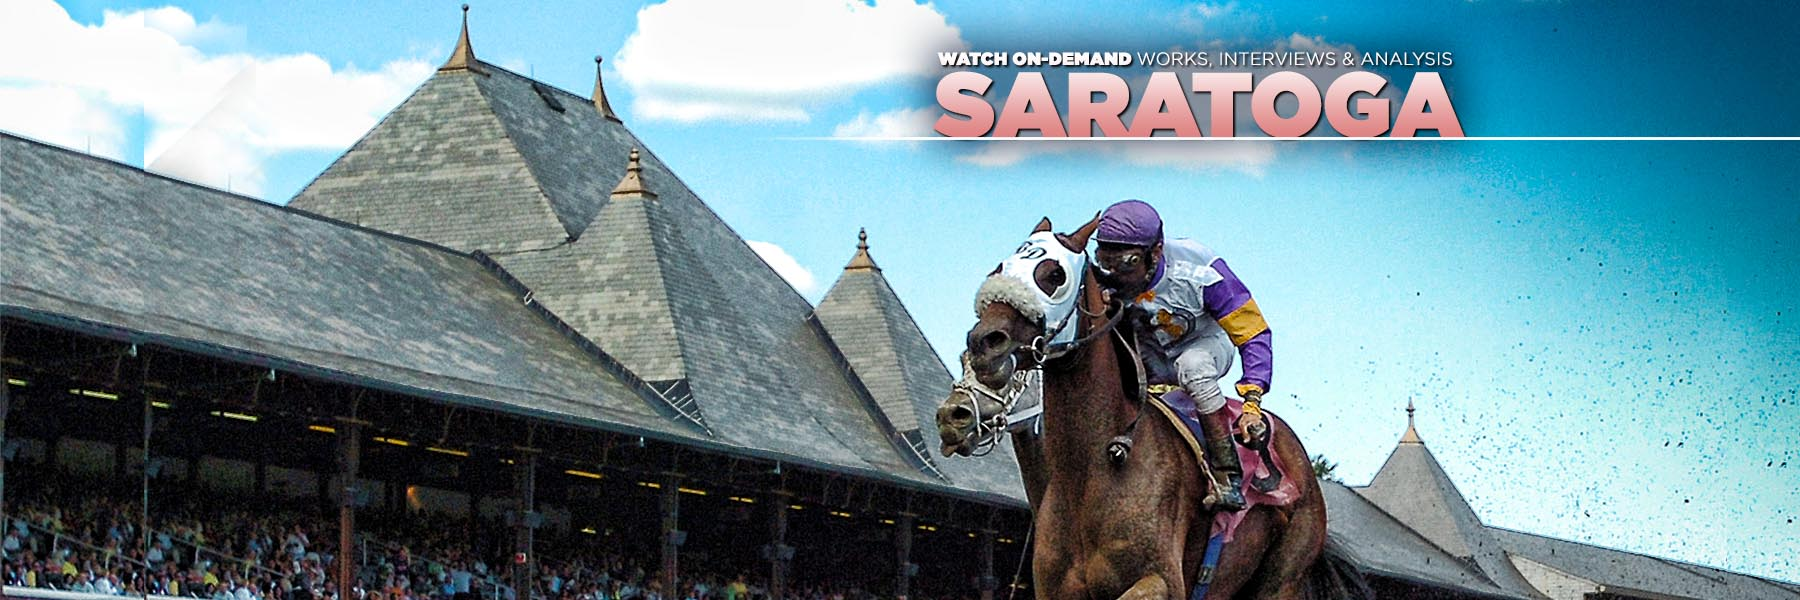 Jeff Siegel's Blog: Saratoga Analysis & Wagering Strategies for Thursday, August 12, 2021